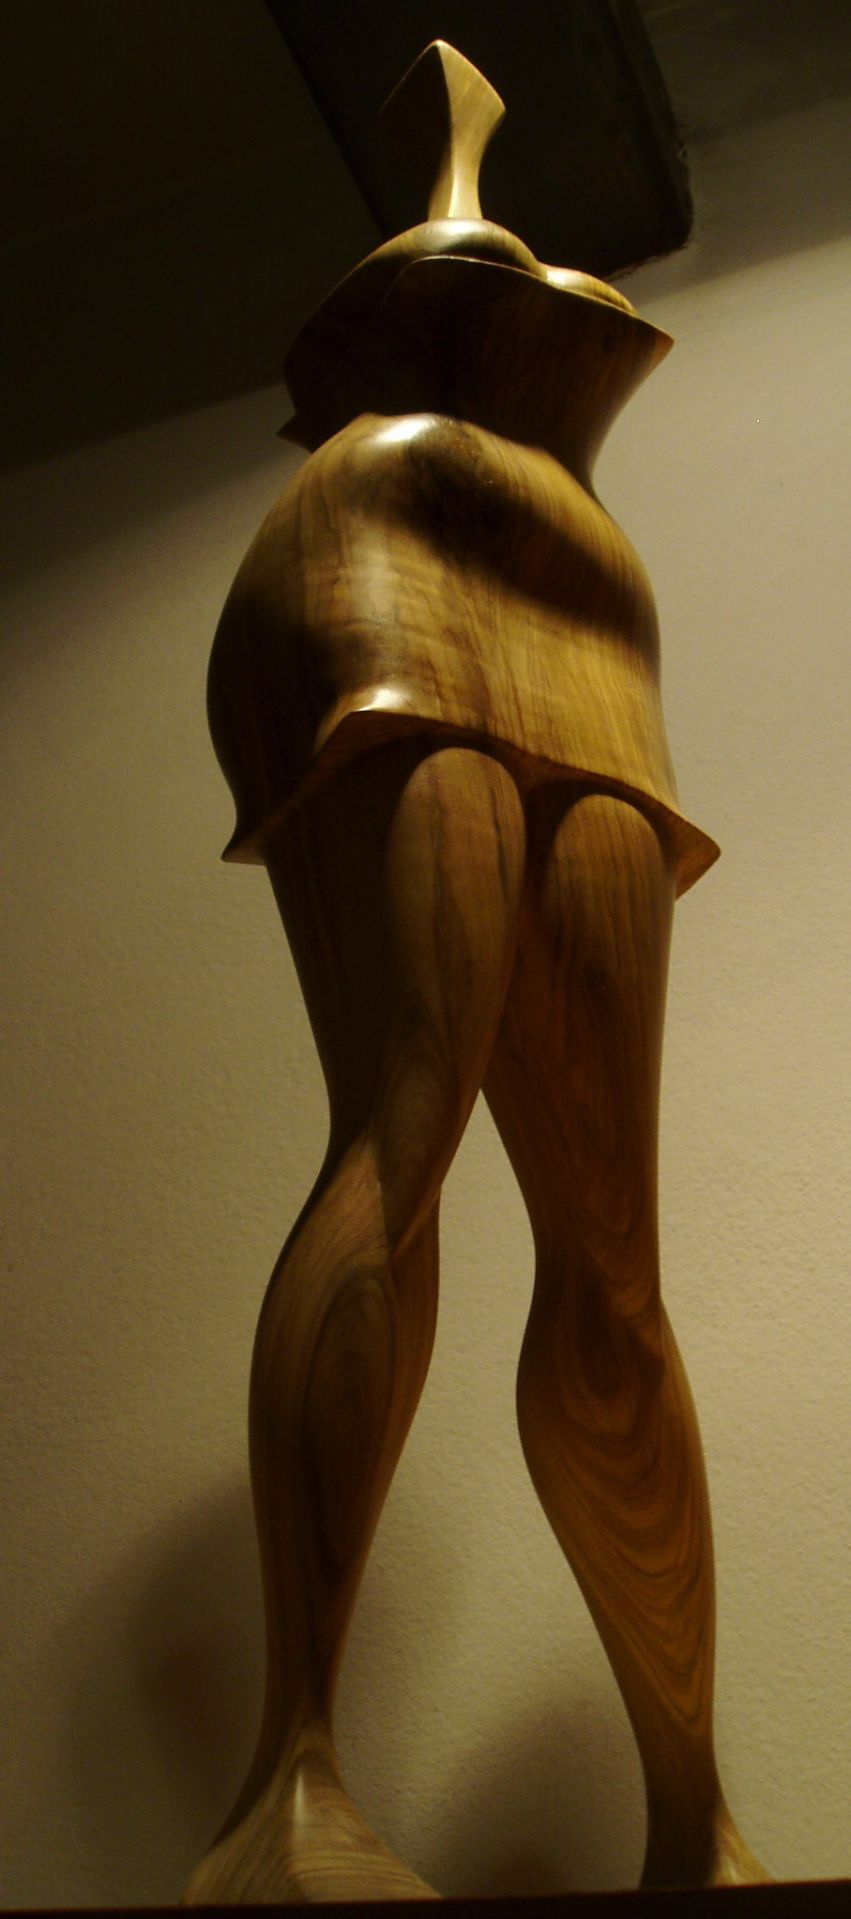 wood sculptures art expression olive wood handmade unique artist design Muse